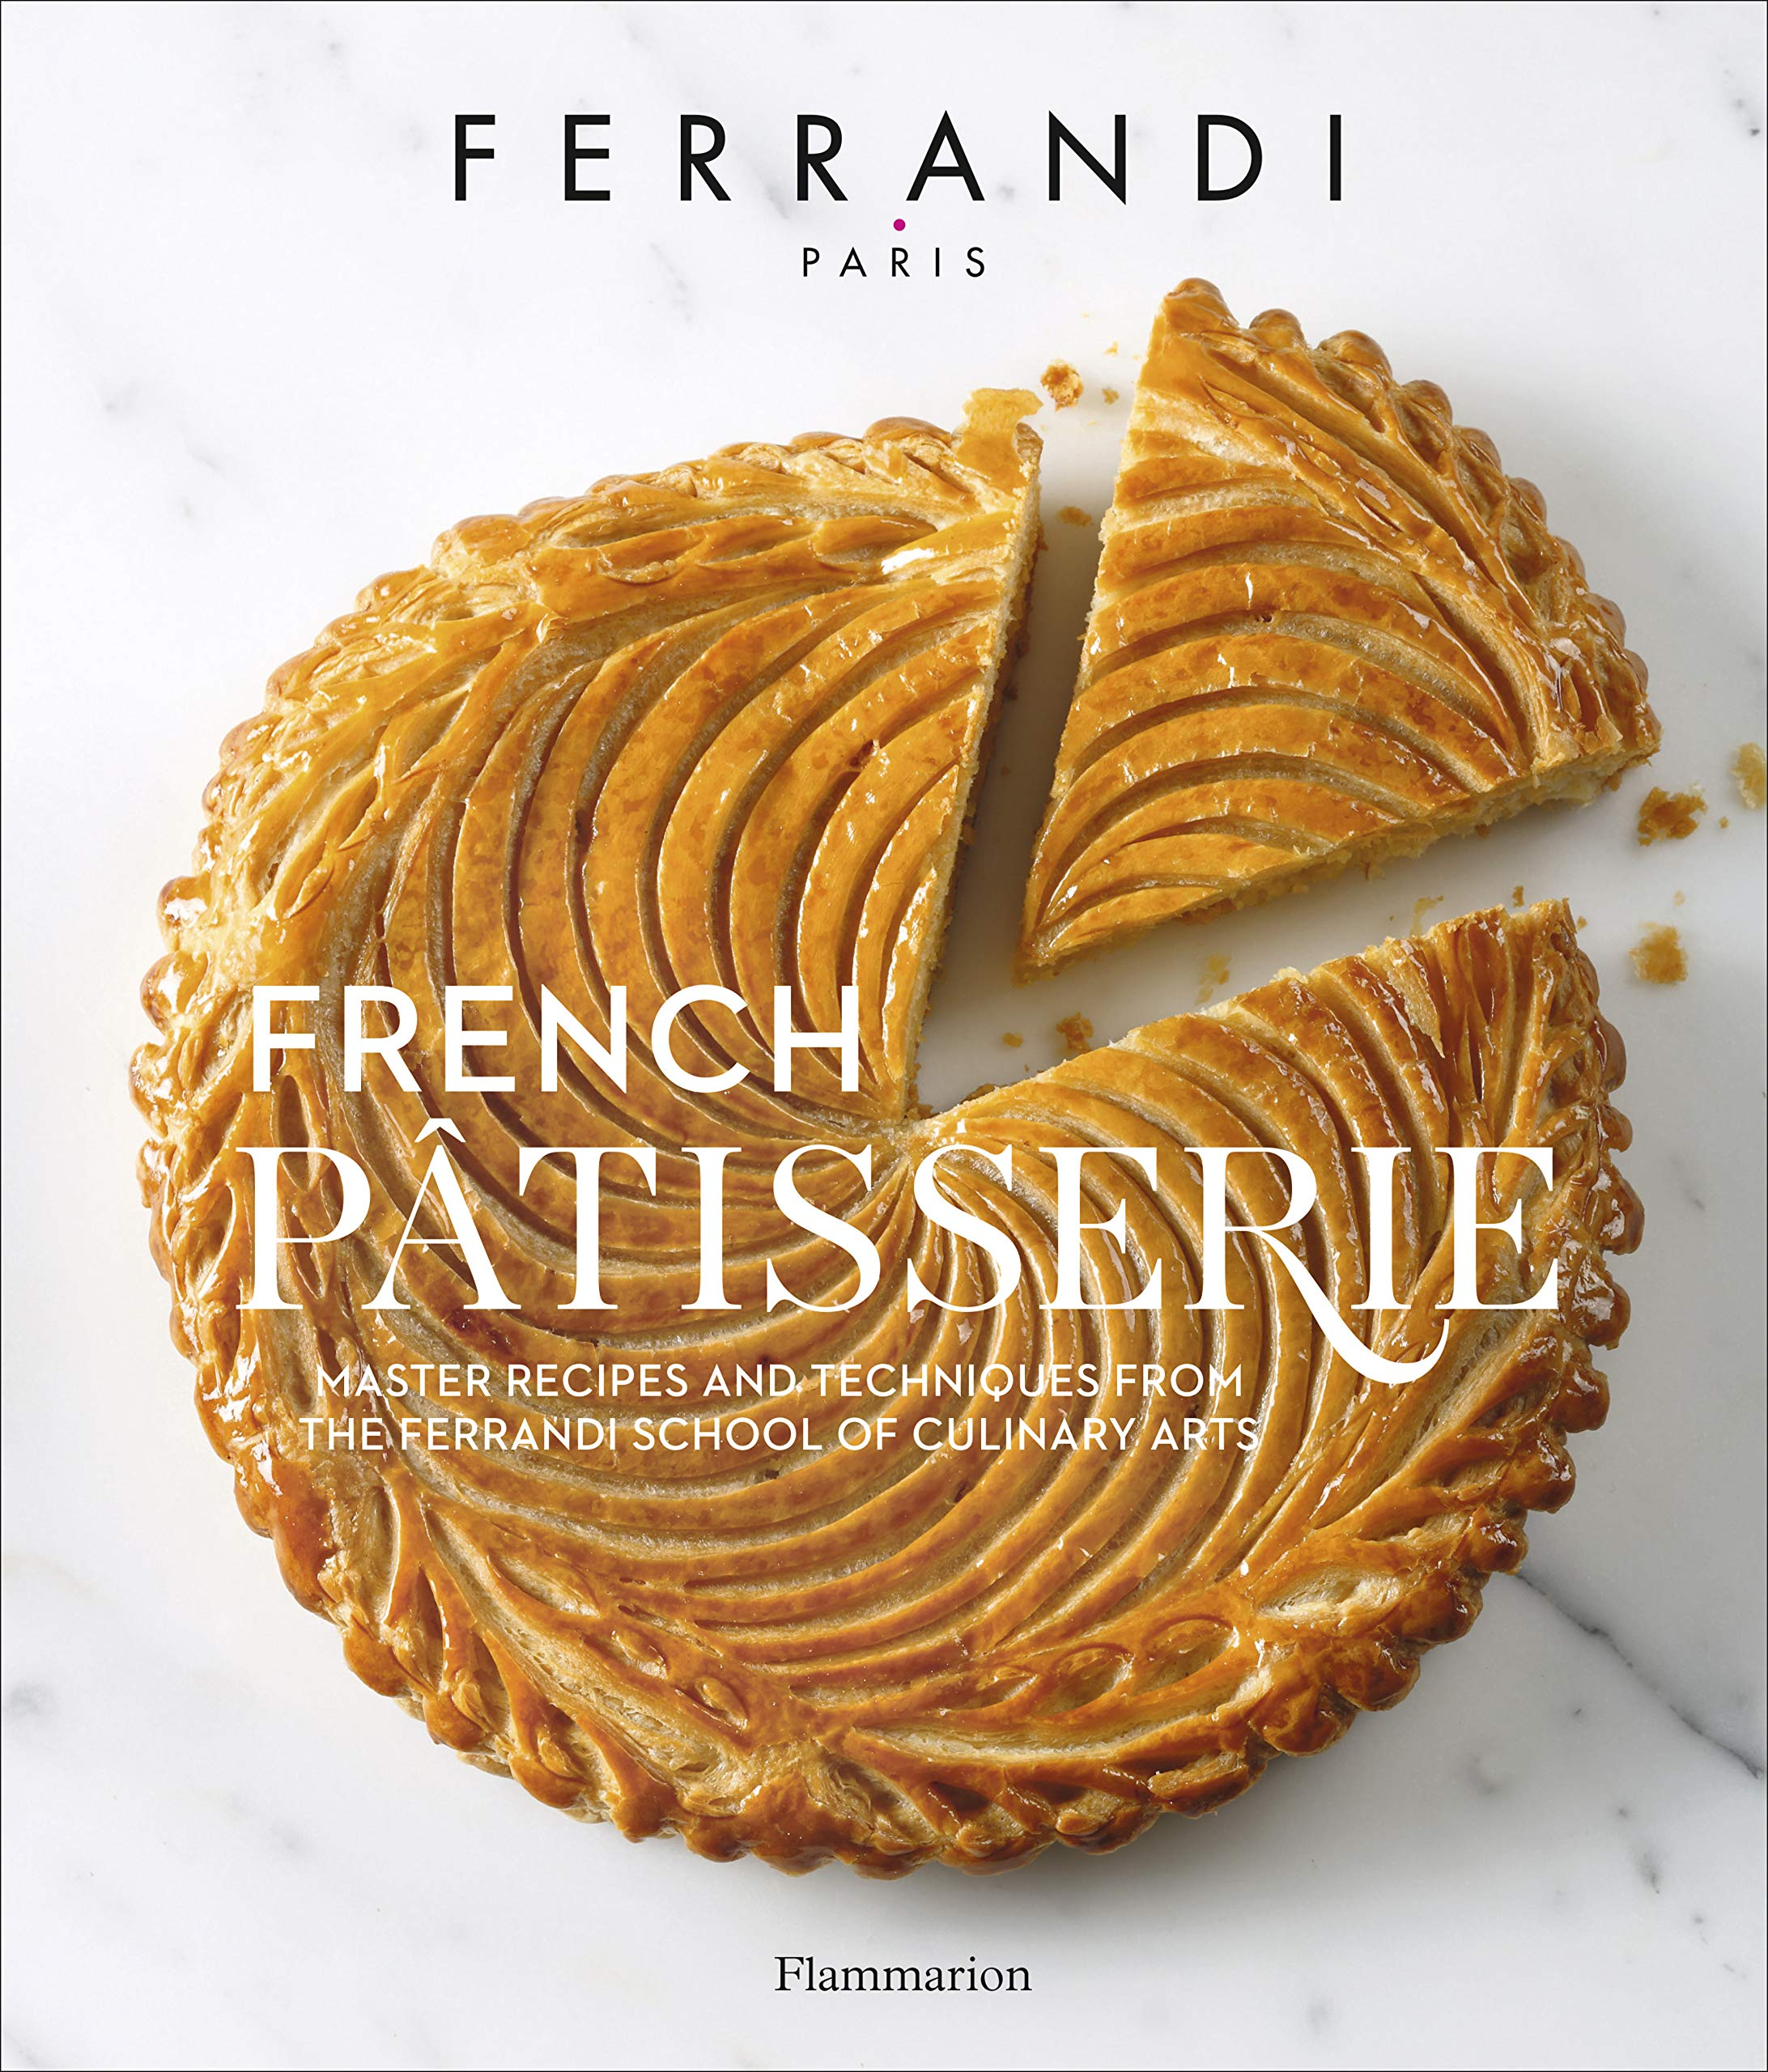 French Patisserie: Master Recipes and Techniques from the Ferrandi School of Culinary Arts by Flammarion